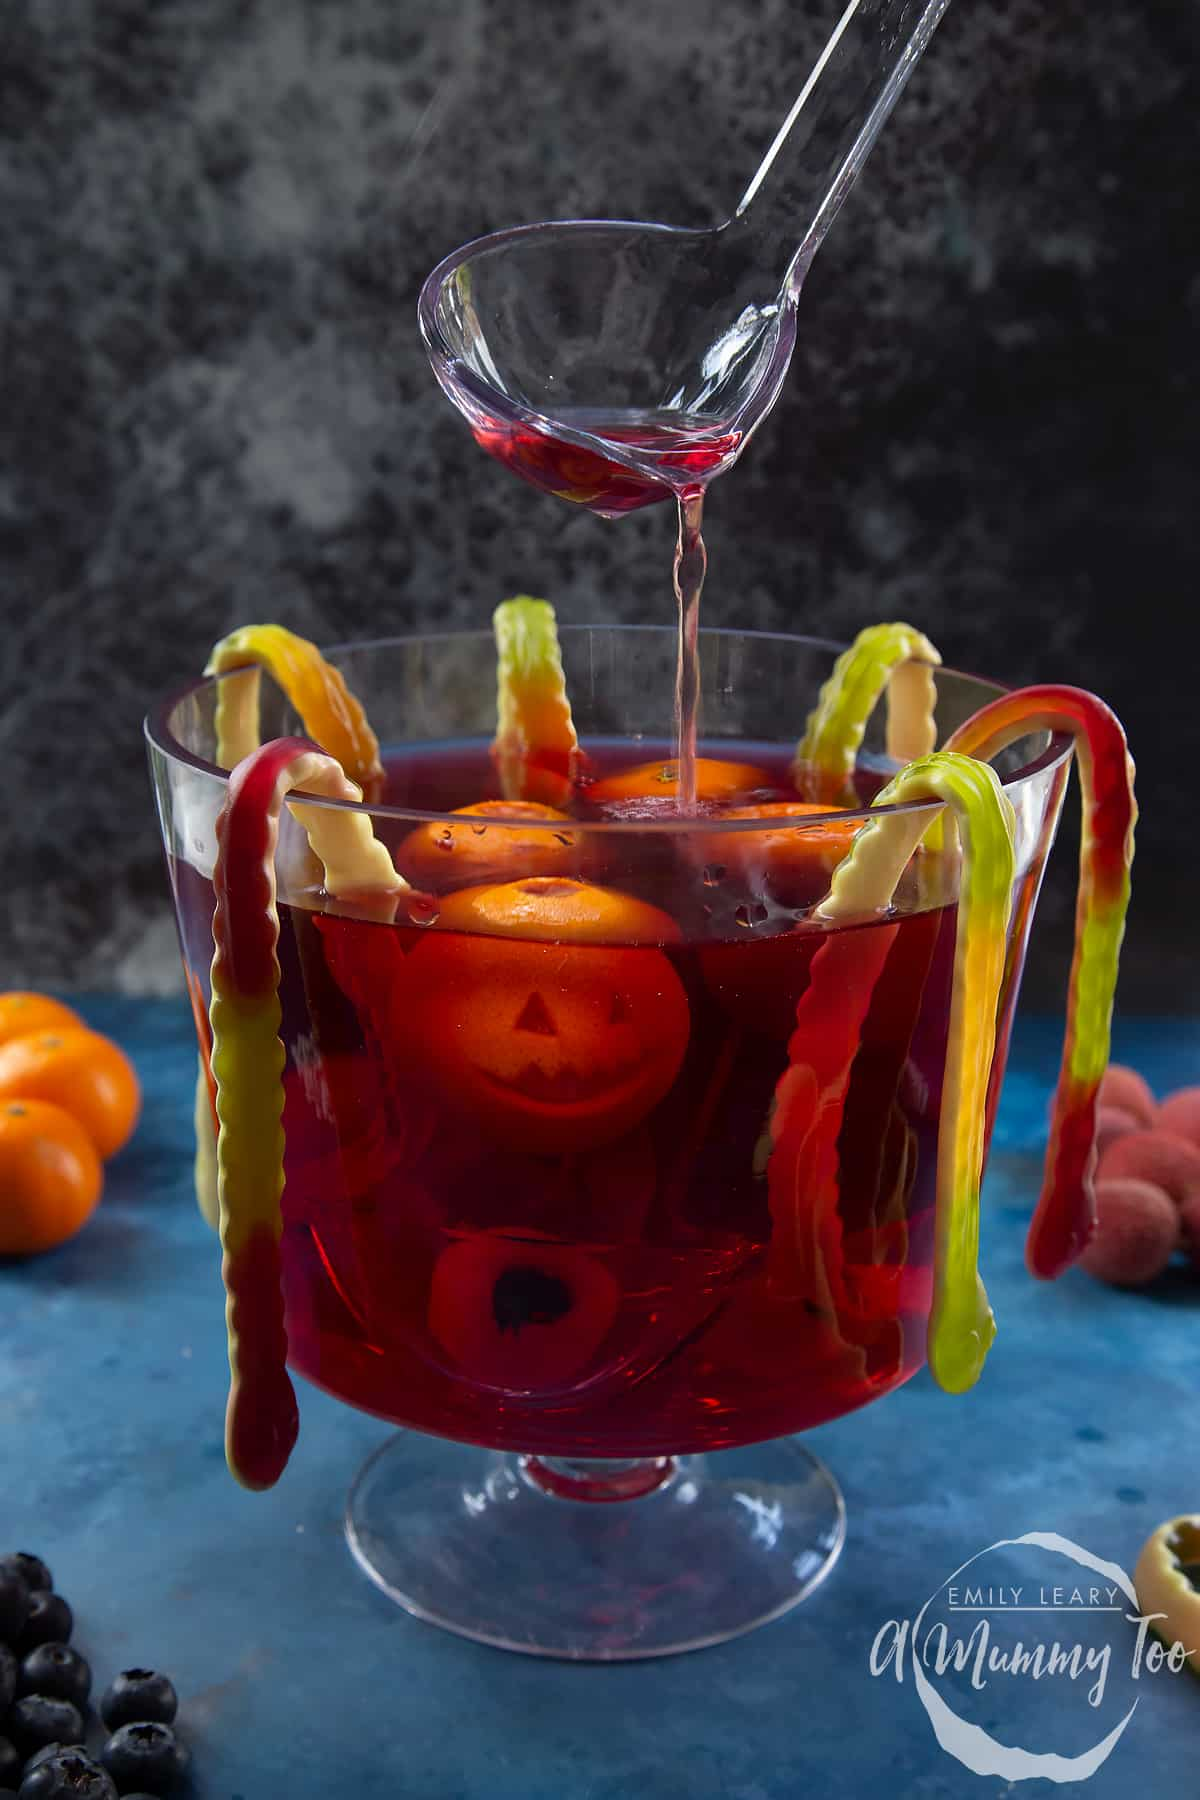 Halloween punch in a glass punch bowl. It is a red liquid, decorated with gummy snakes, jack'o'lantern clementines and lychee and blueberry eyeballs. A ladle drizzles punch into the bowl.